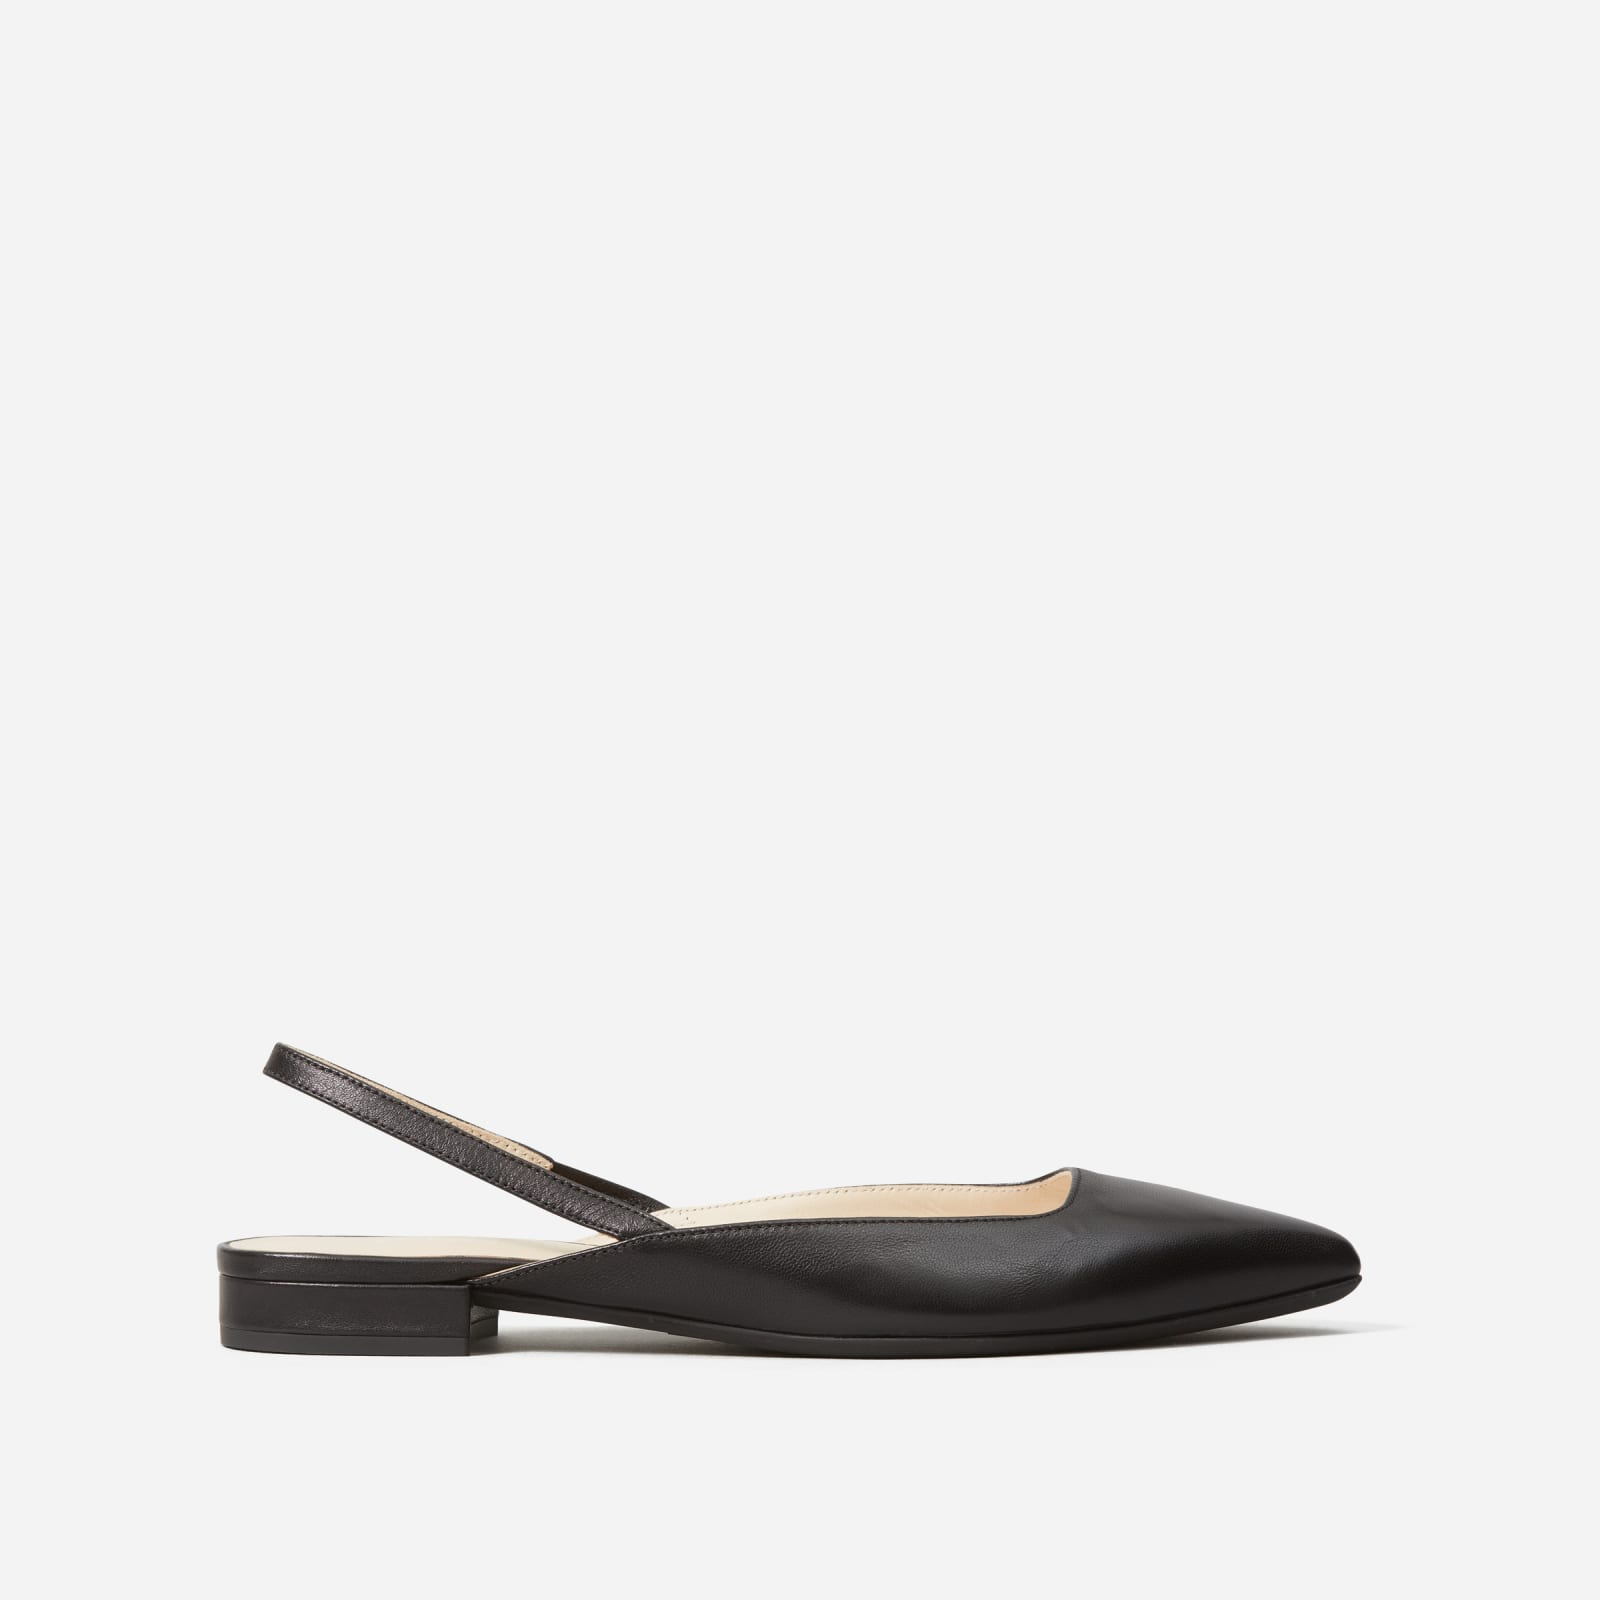 editor slingback by everlane in black, size 5